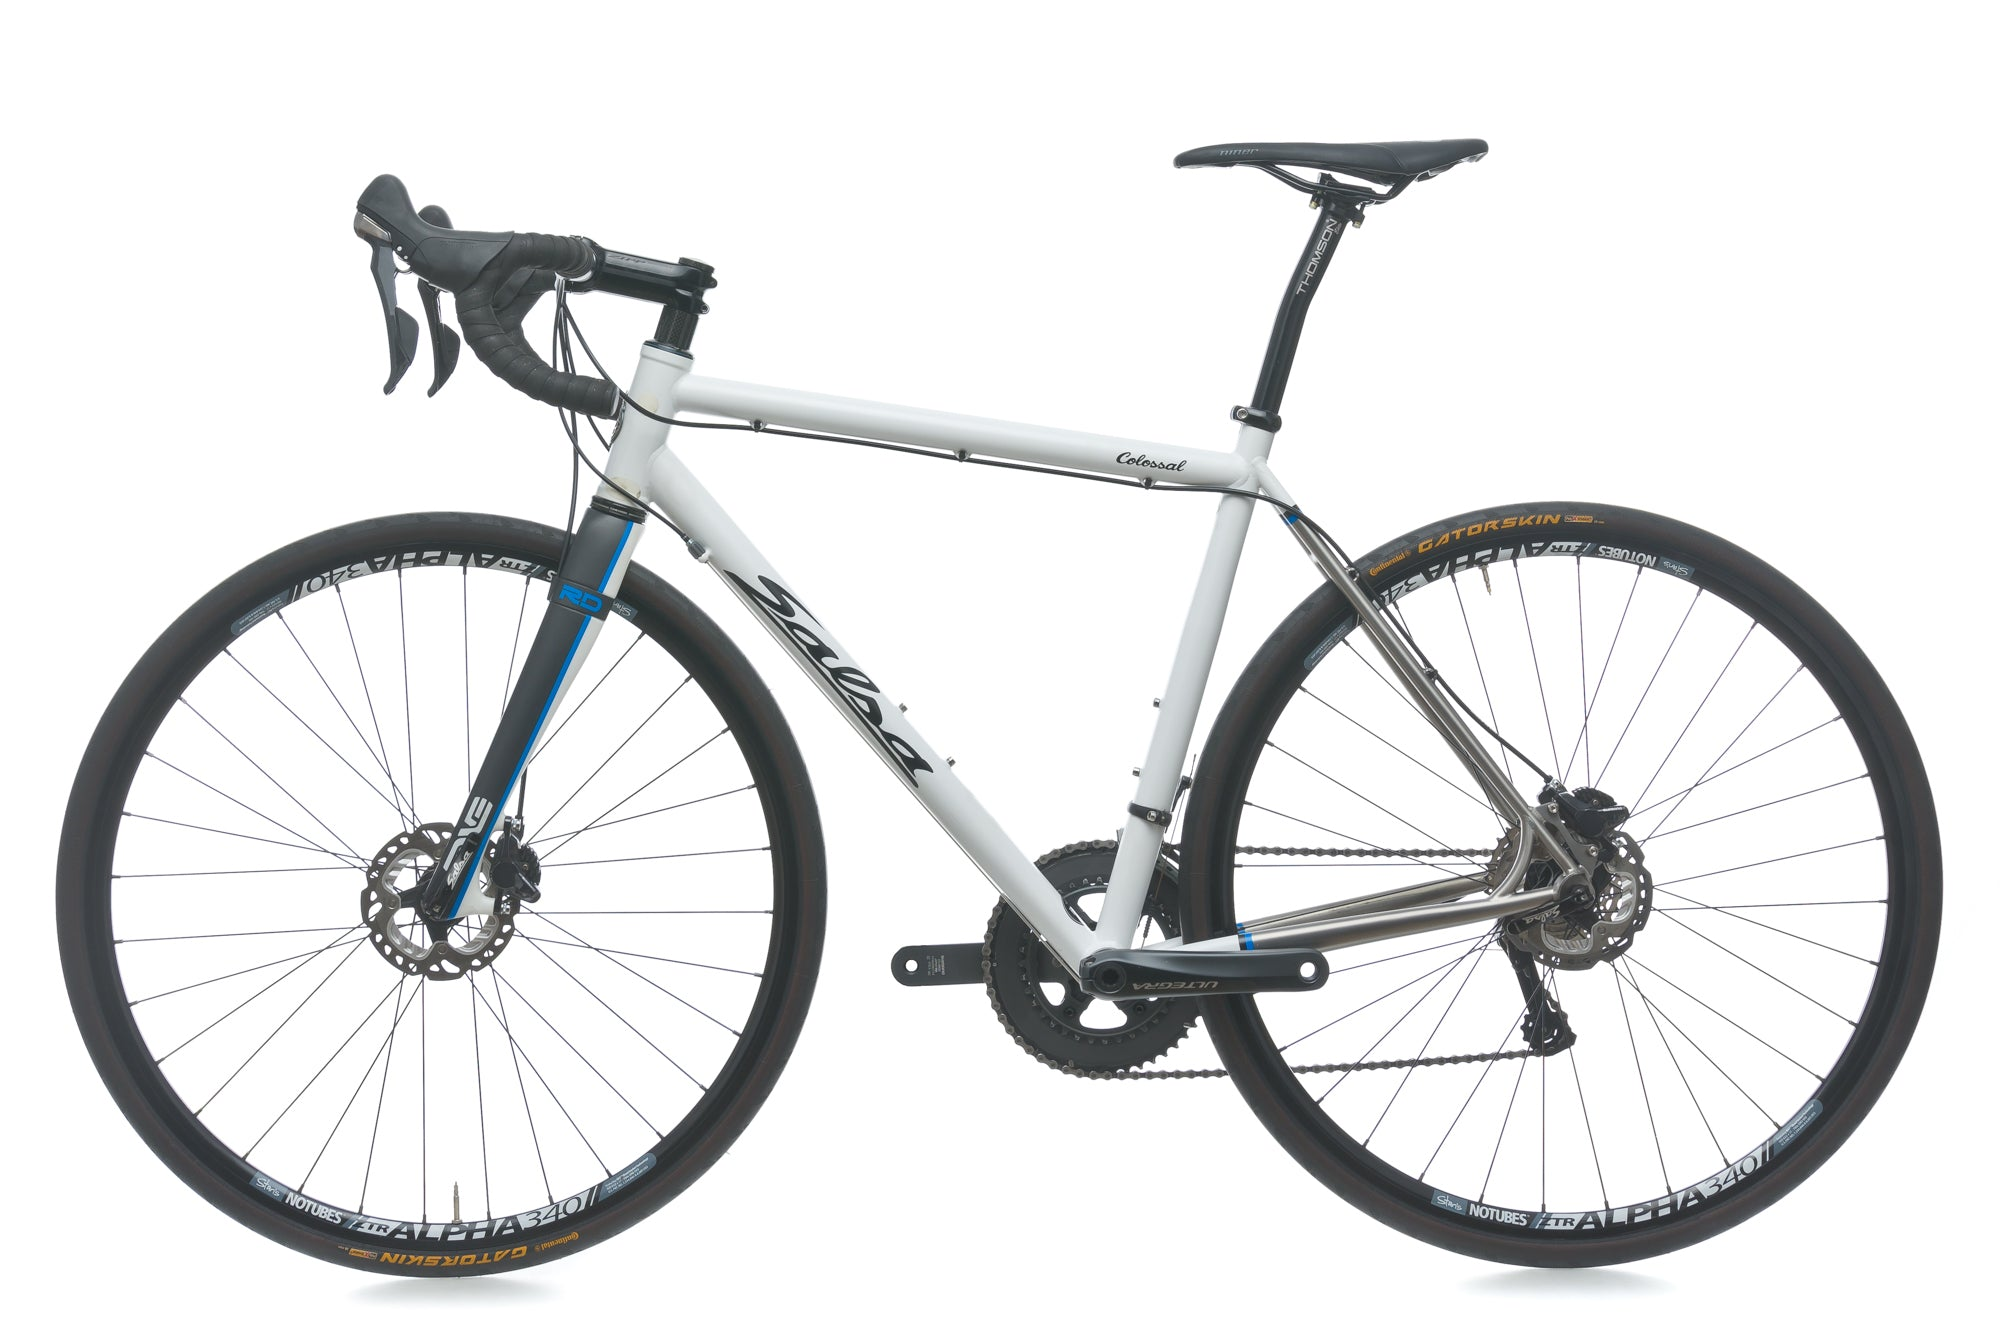 Salsa Colossal Ti 55cm Bike - 2014 non-drive side